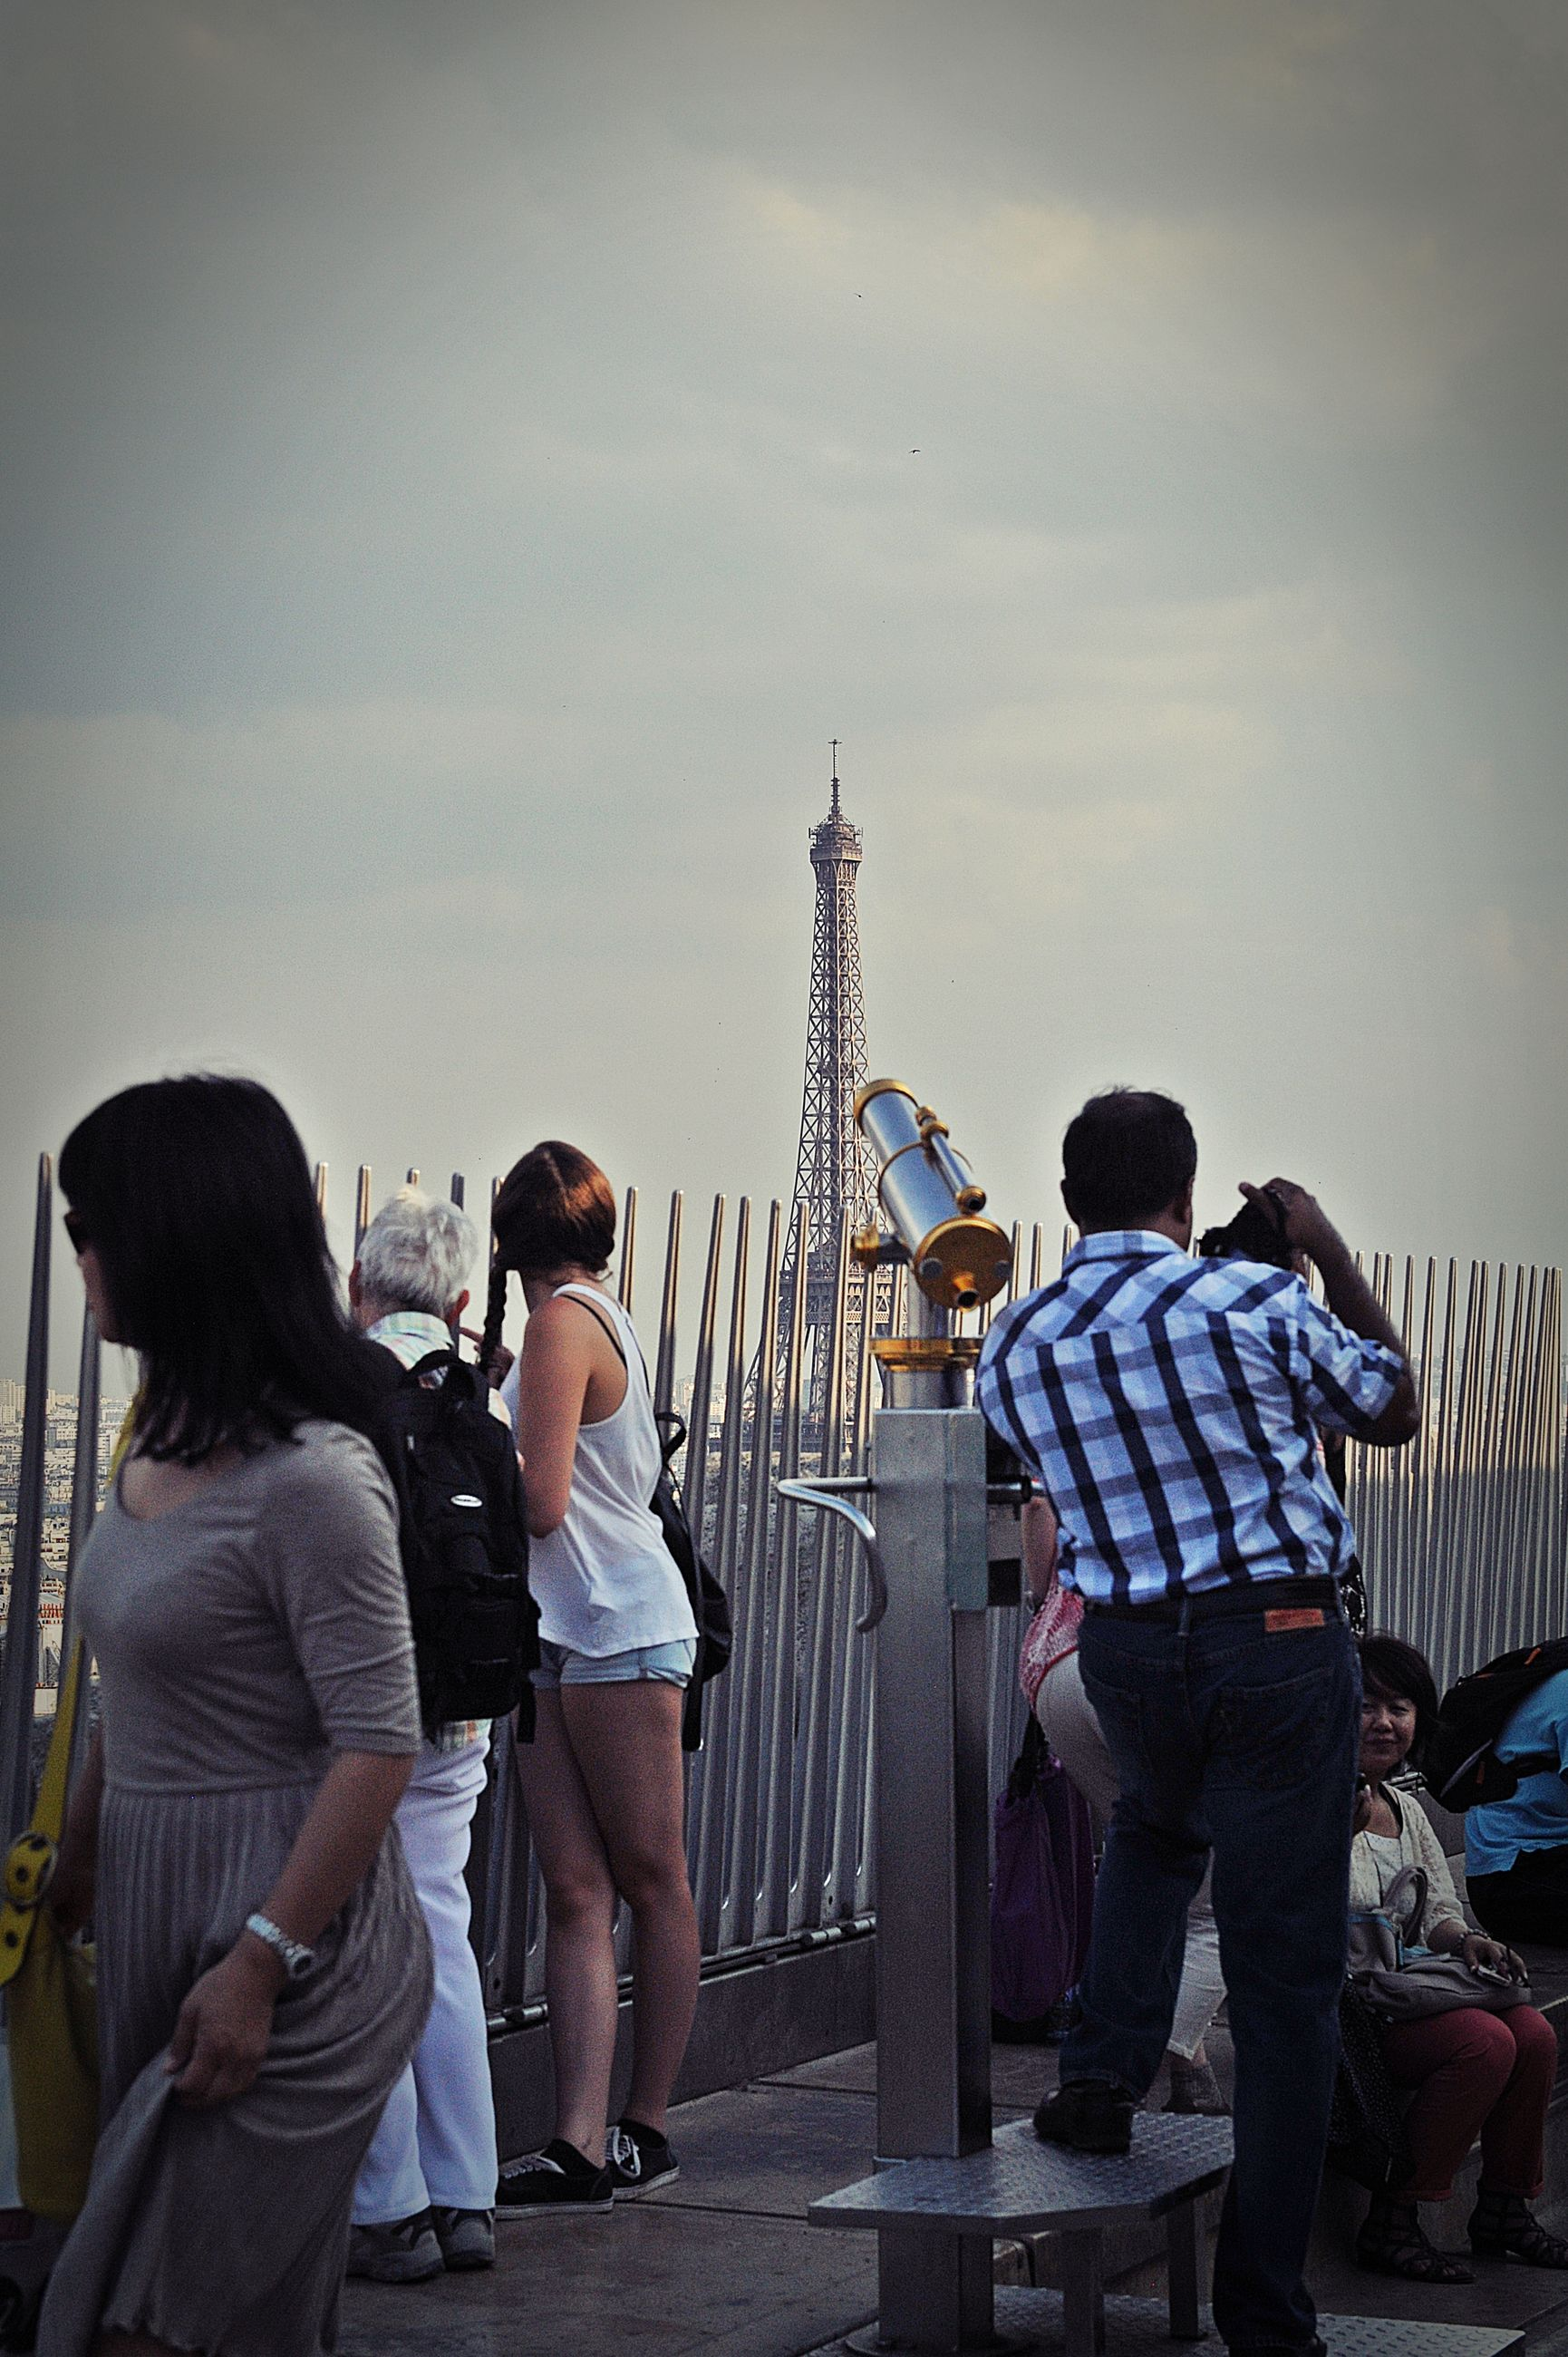 real people, rear view, tourism, leisure activity, travel destinations, built structure, architecture, women, travel, men, tower, sky, lifestyles, building exterior, casual clothing, vacations, outdoors, large group of people, full length, day, city, togetherness, friendship, coin-operated binoculars, people